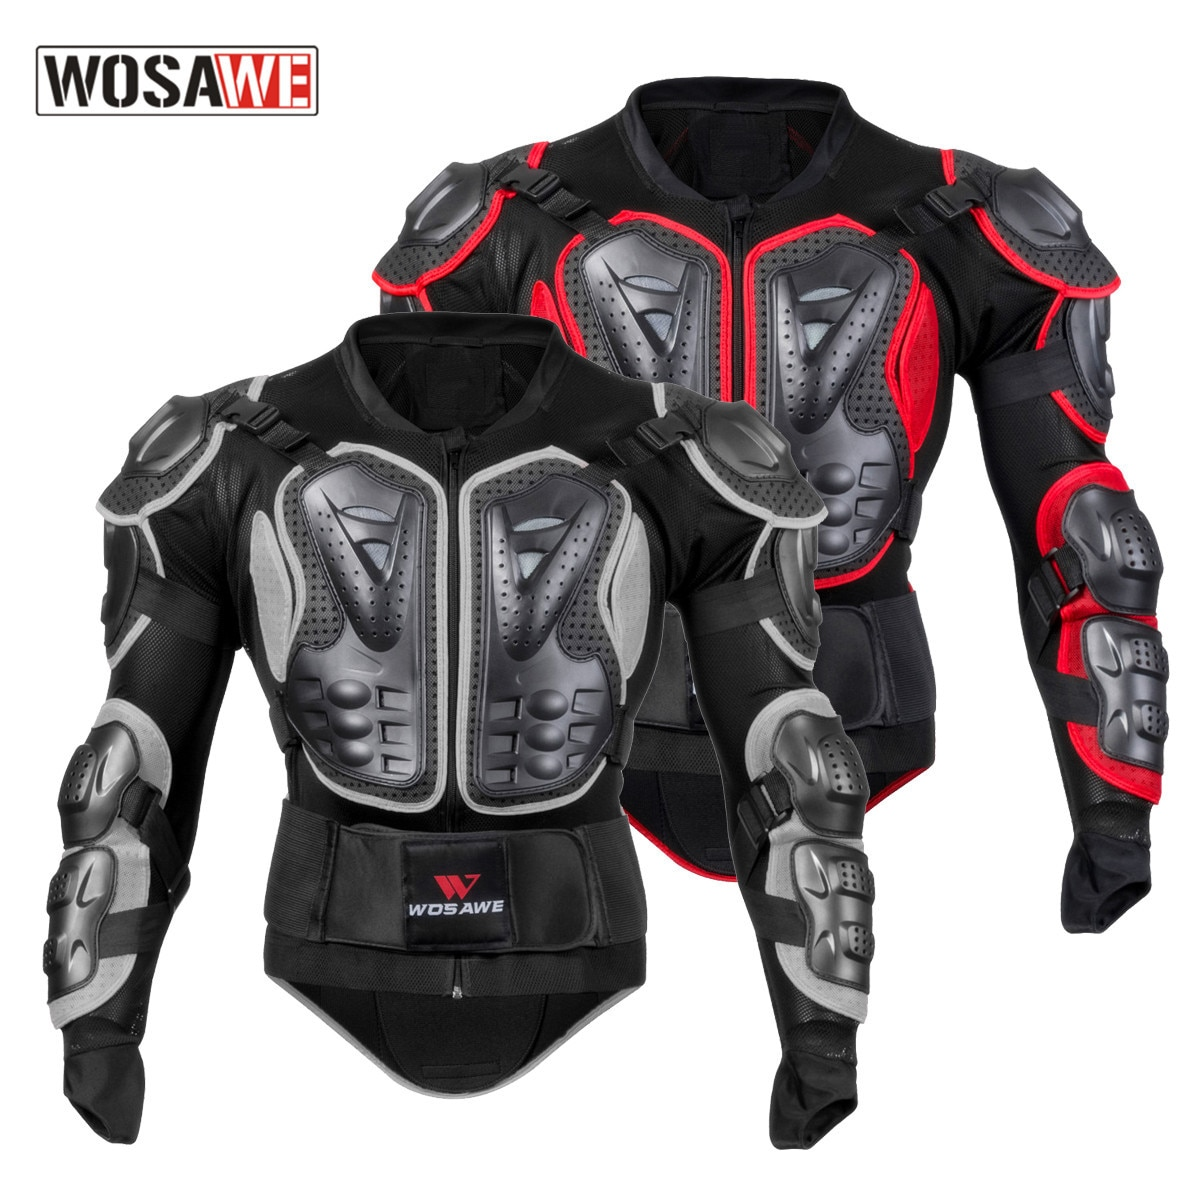 WOSAWE Full Body Motorcycle & Auto Racing Protective Armor/Jackets Snowboard Jacket Gear Back Chest Shoullder Elbow Protection